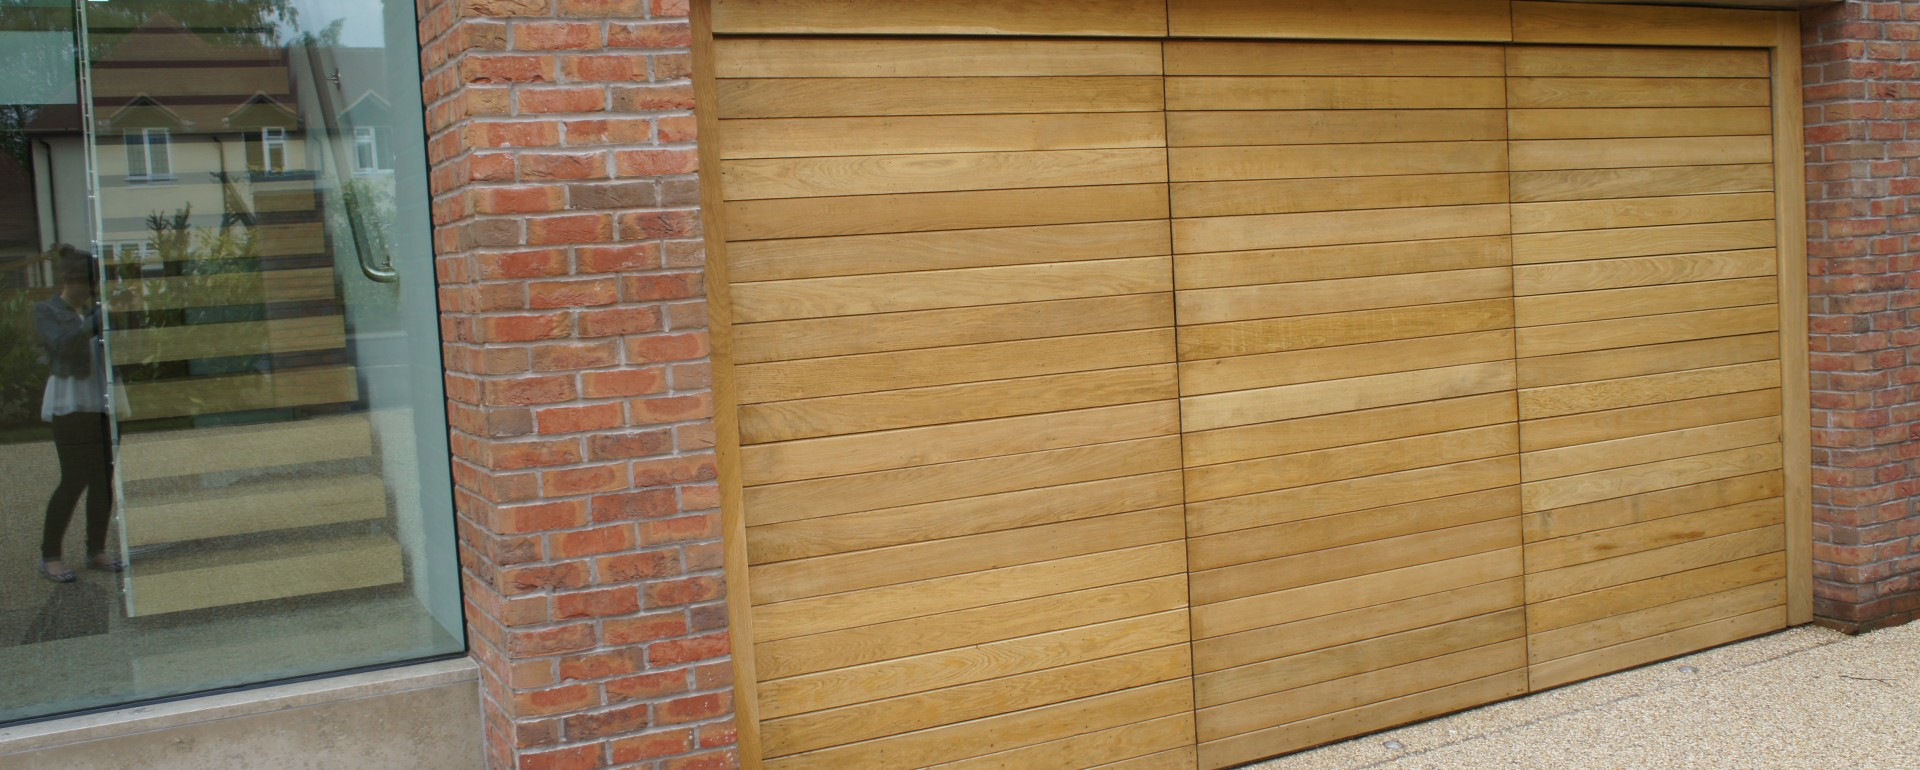 770 #6D4A2C Bespoke Garage Doors Cheshire Lakes Garage Doors picture/photo Oak Garage Doors 38491920